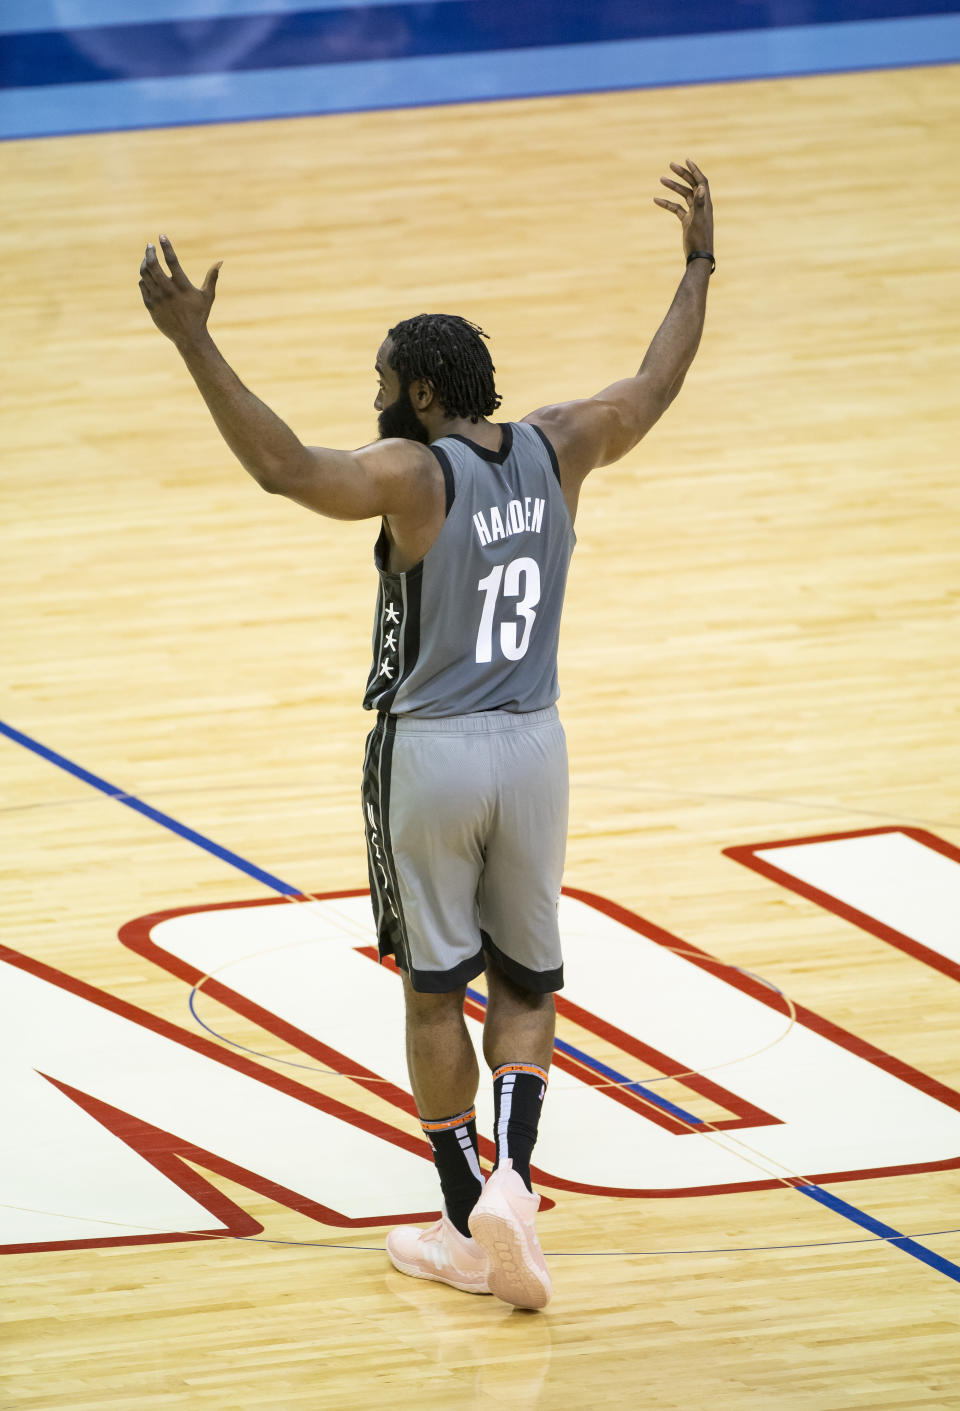 Brooklyn Nets guard James Harden (13) celebrates after an assist during the first half of an NBA basketball game against the Houston Rockets Wednesday, March 3, 2021, in Houston. (Mark Mulligan/Houston Chronicle via AP)